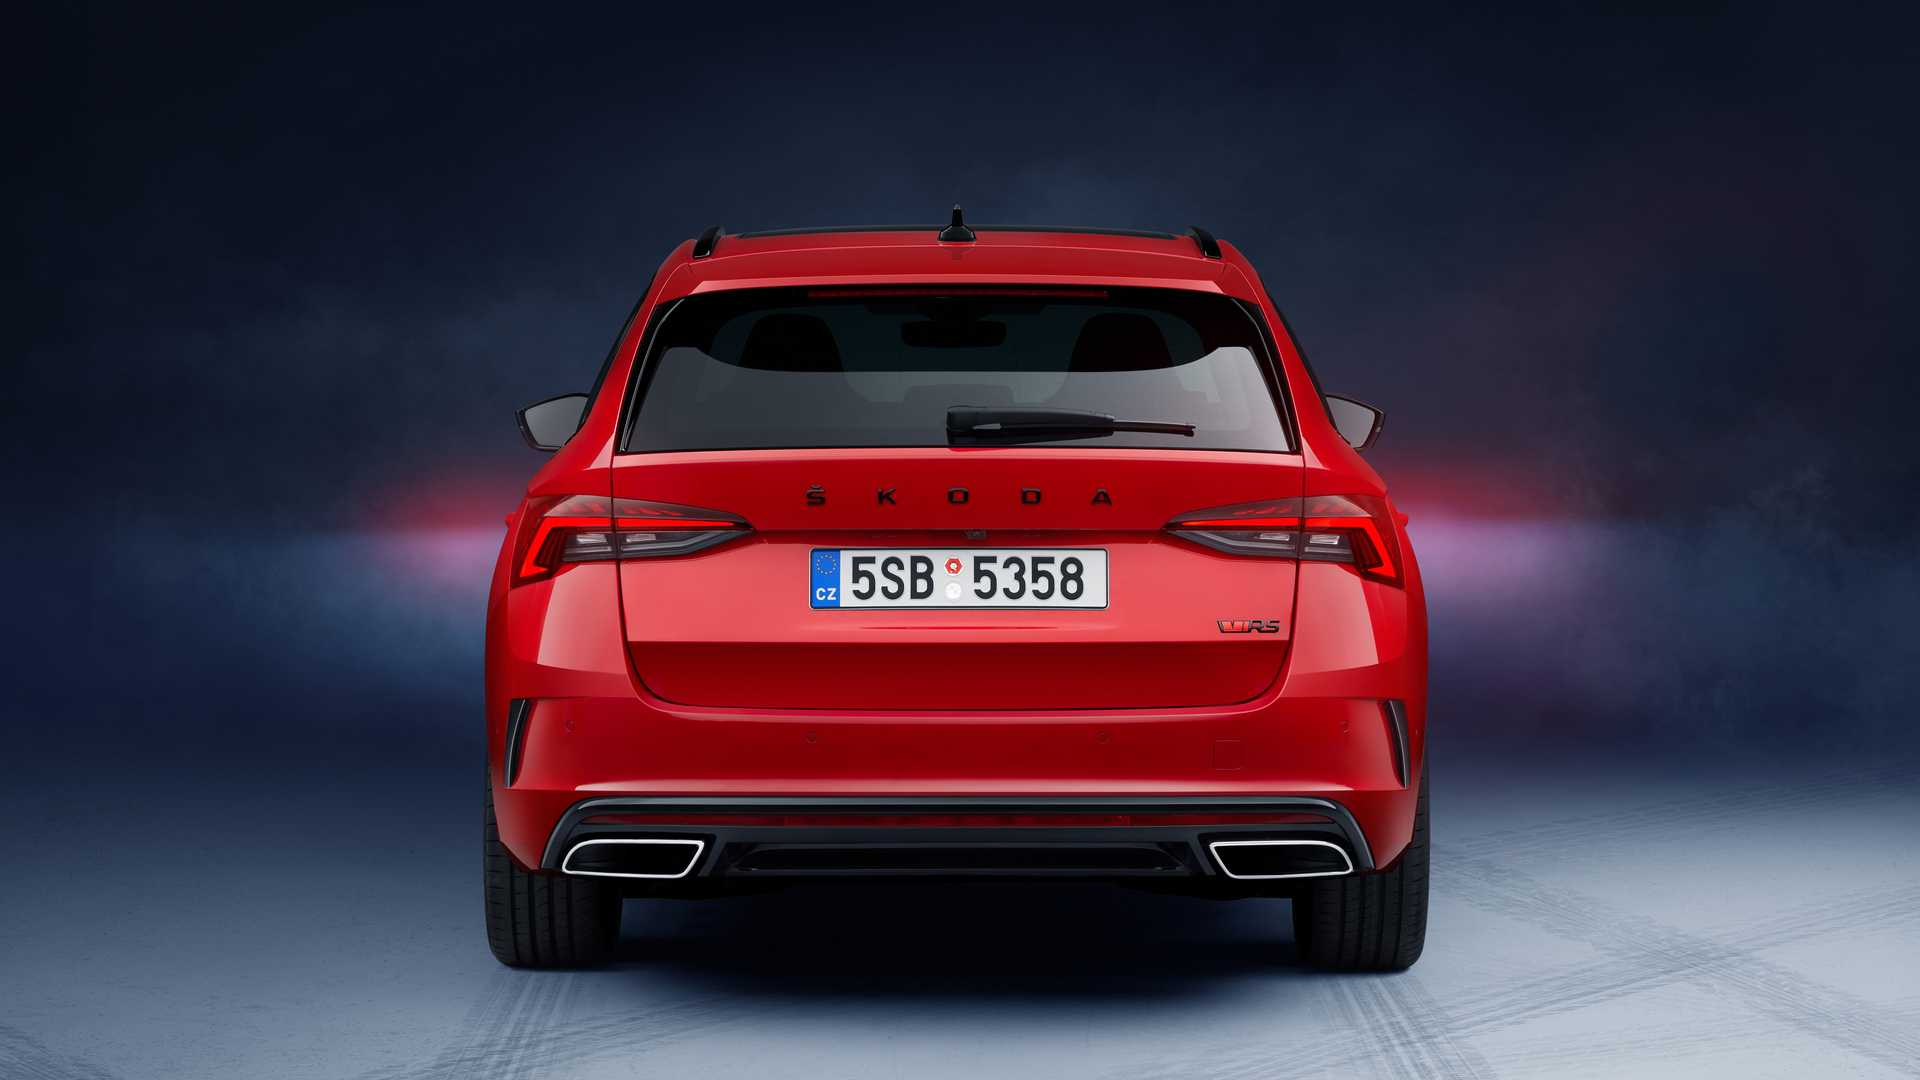 2021 Skoda Octavia Rs Debuts With Tsi And Tdi Engines Optional Awd